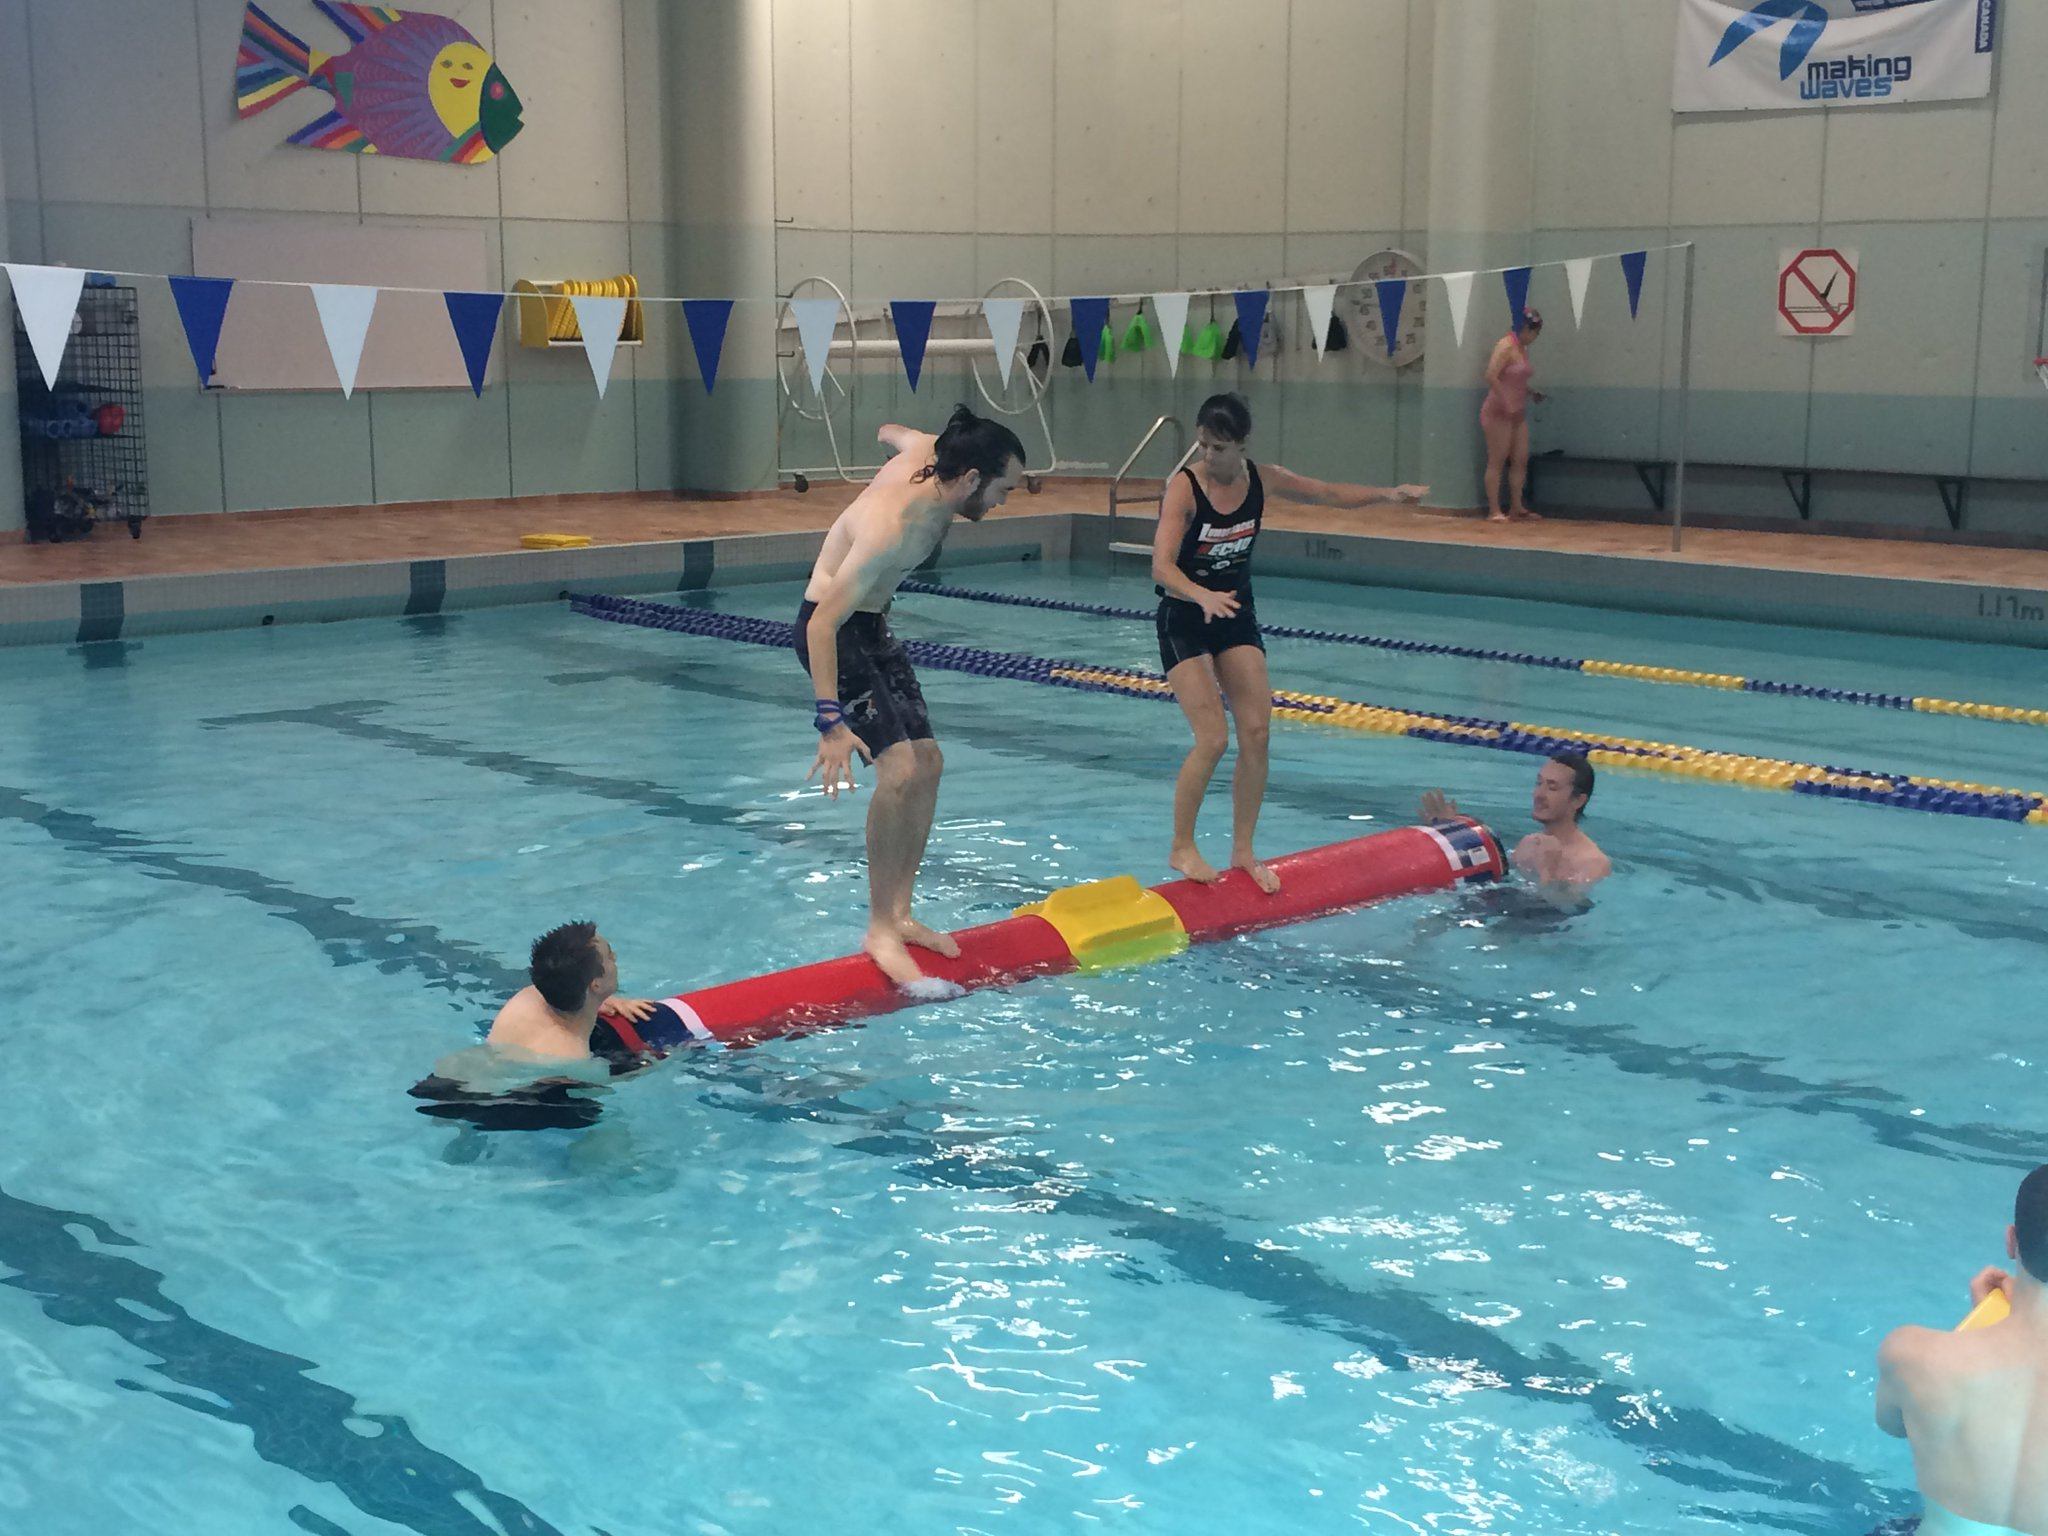 Nait Campus Rec On Twitter Check Out Our Log Rolling Challenge Tomorrow 12 30pm In The Pool